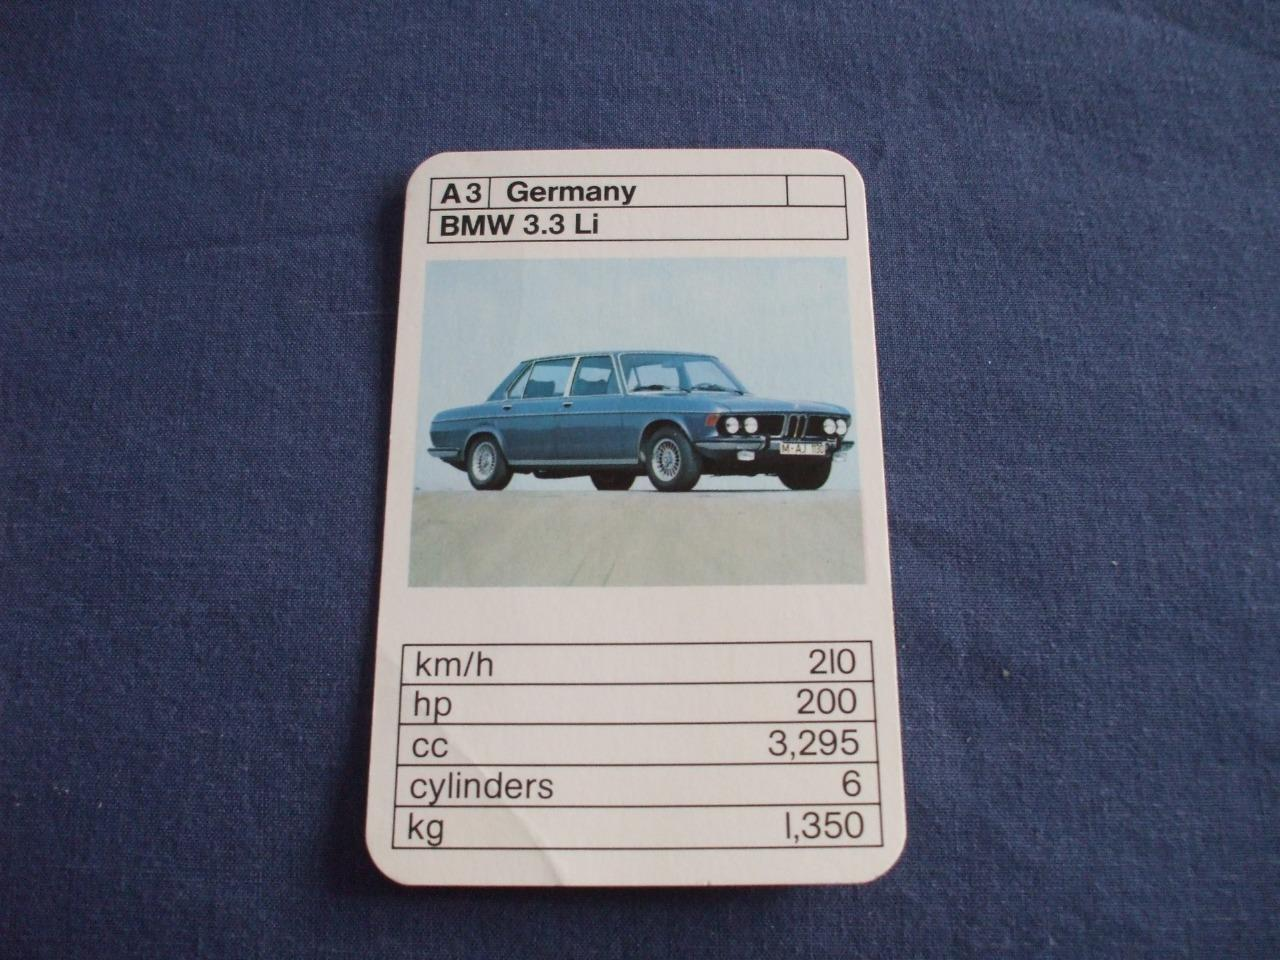 REFDUBREQ TOP TRUMPSSUPER CARS SINGLE CARD SELECTION FROM - Sports cars top trumps